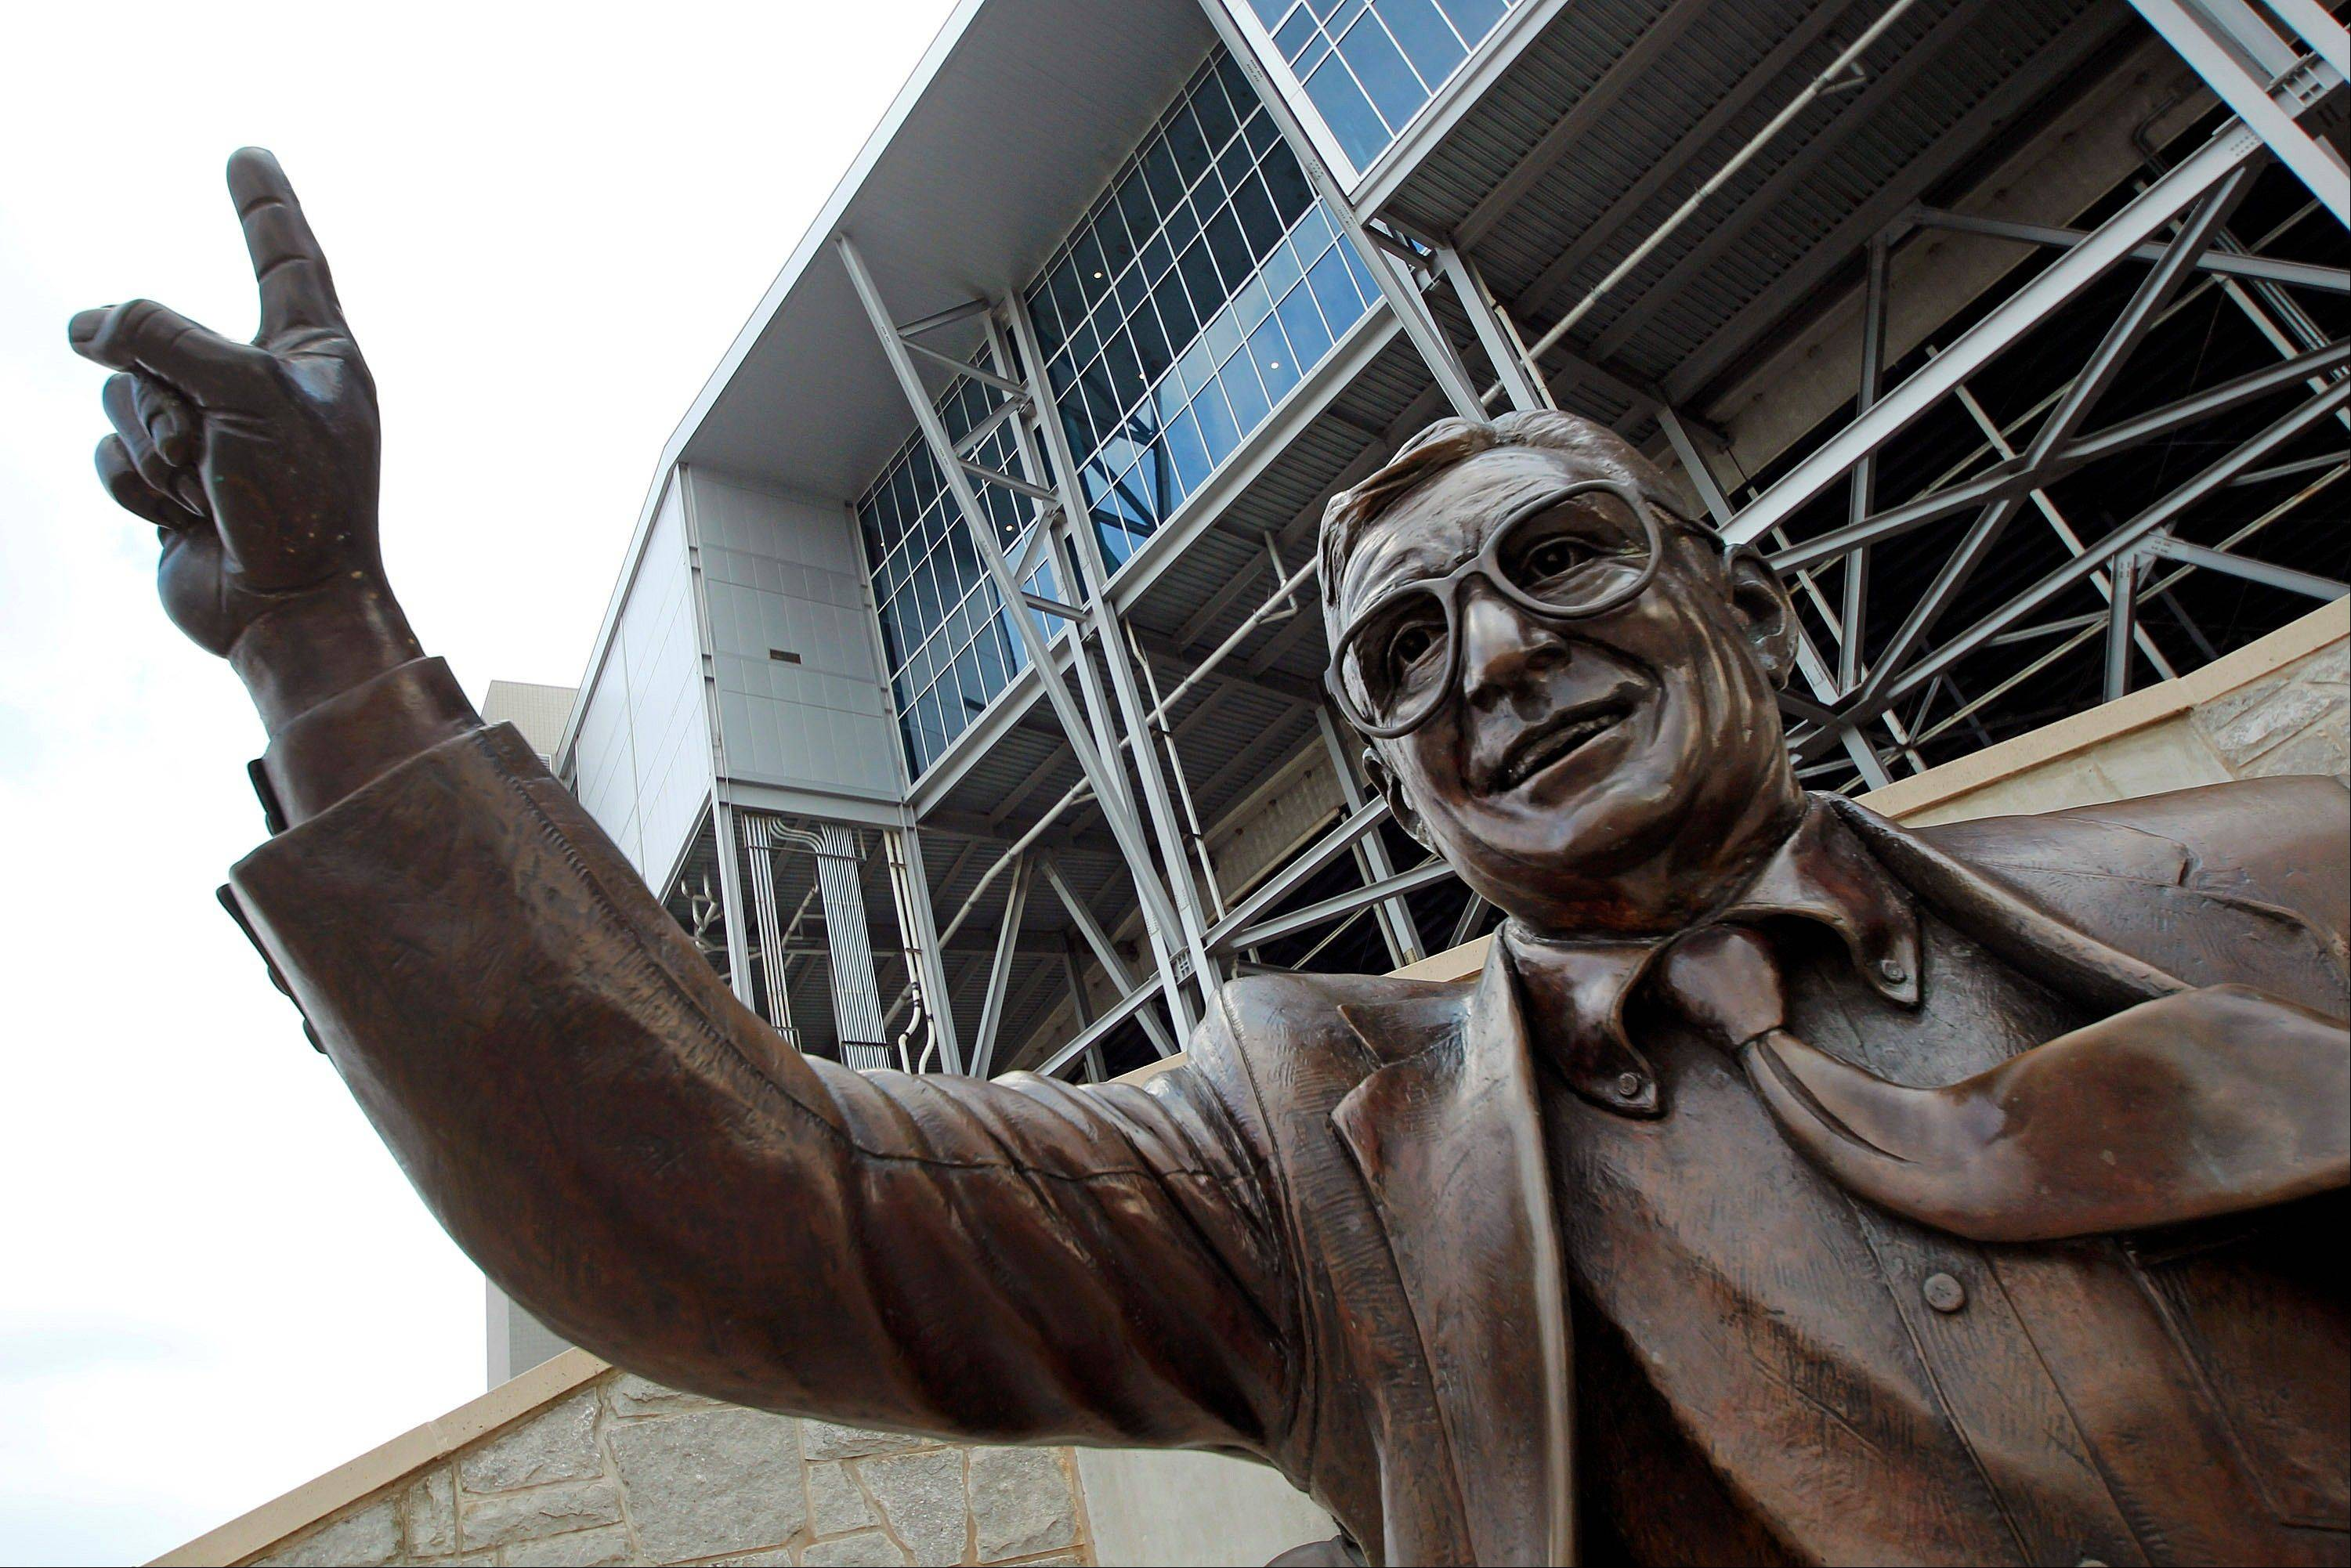 Joe Paterno symbolizes hypocrisy of college football